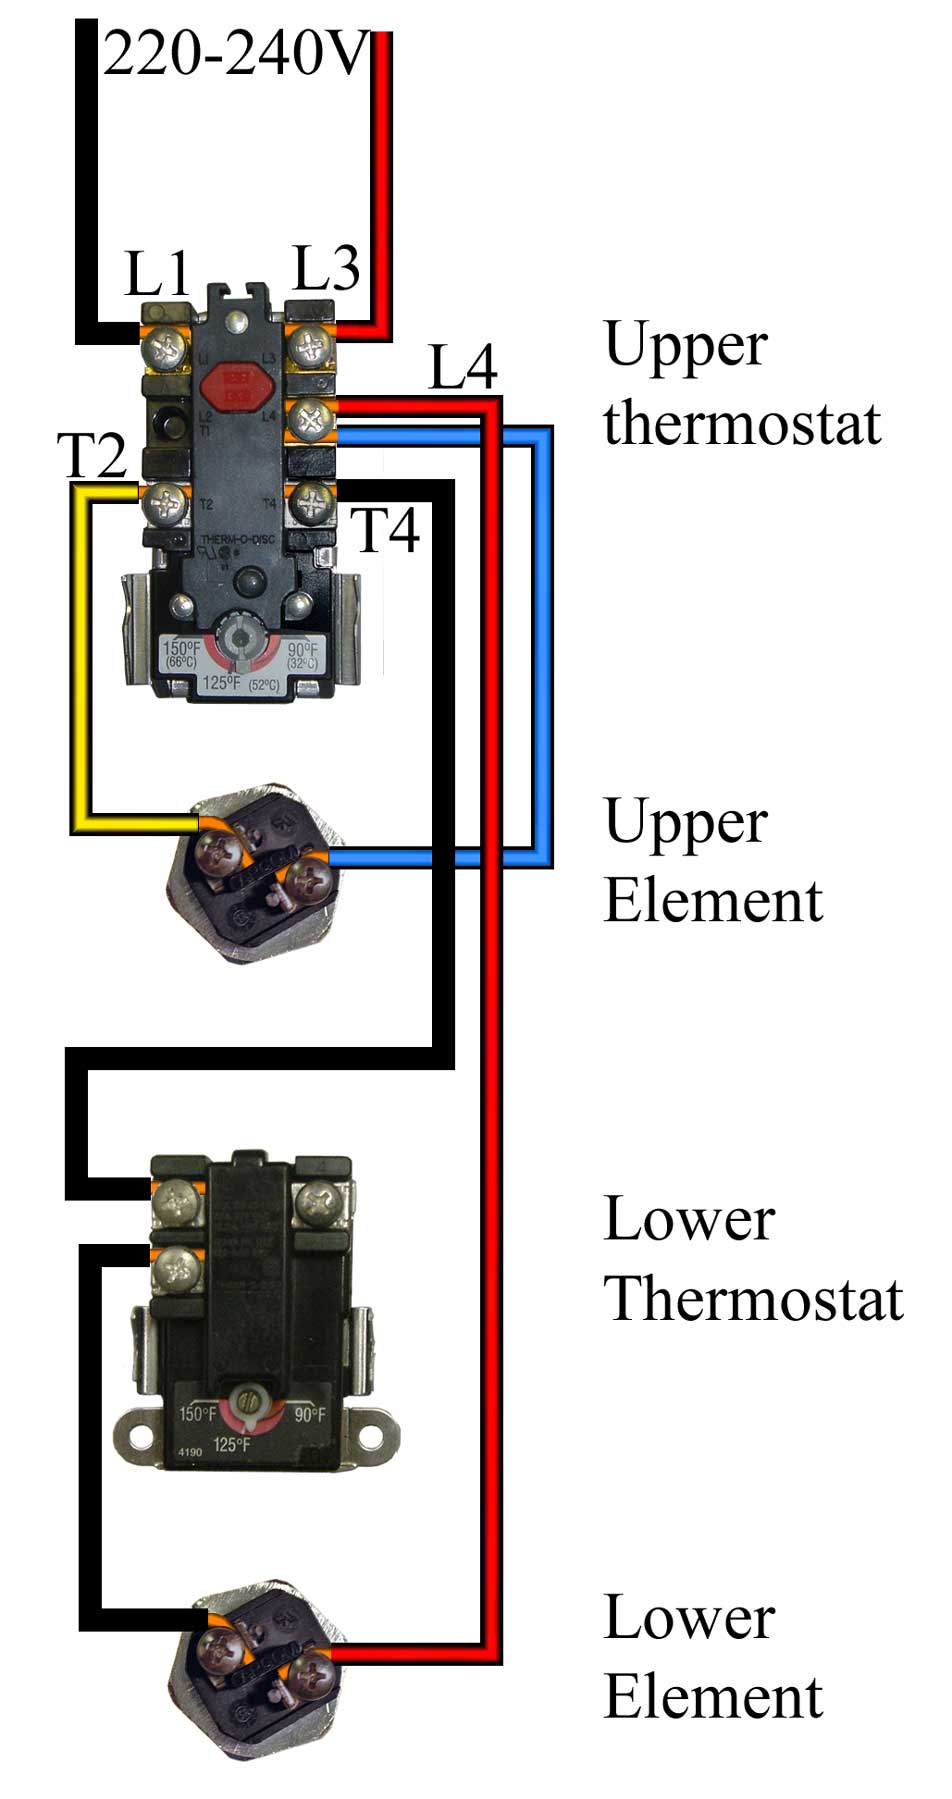 Water heater wiring w num10 how to wire water heater thermostat wiring diagram for water heater at crackthecode.co